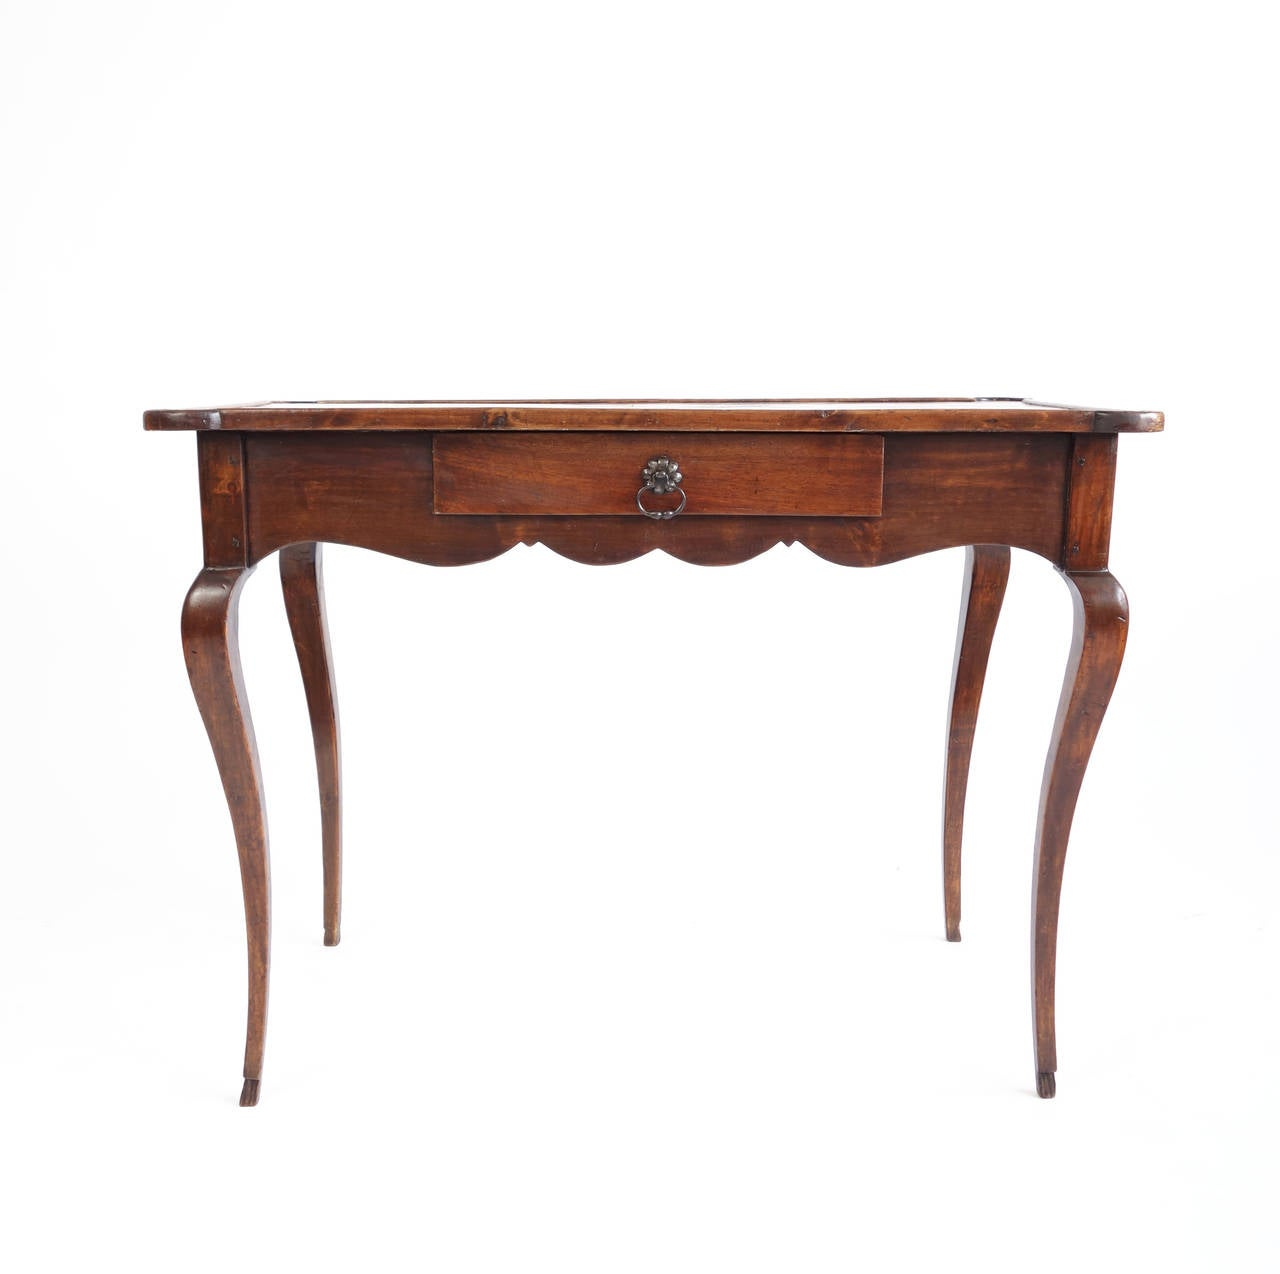 19th century french leather topped bureau plat at 1stdibs for Bureau table